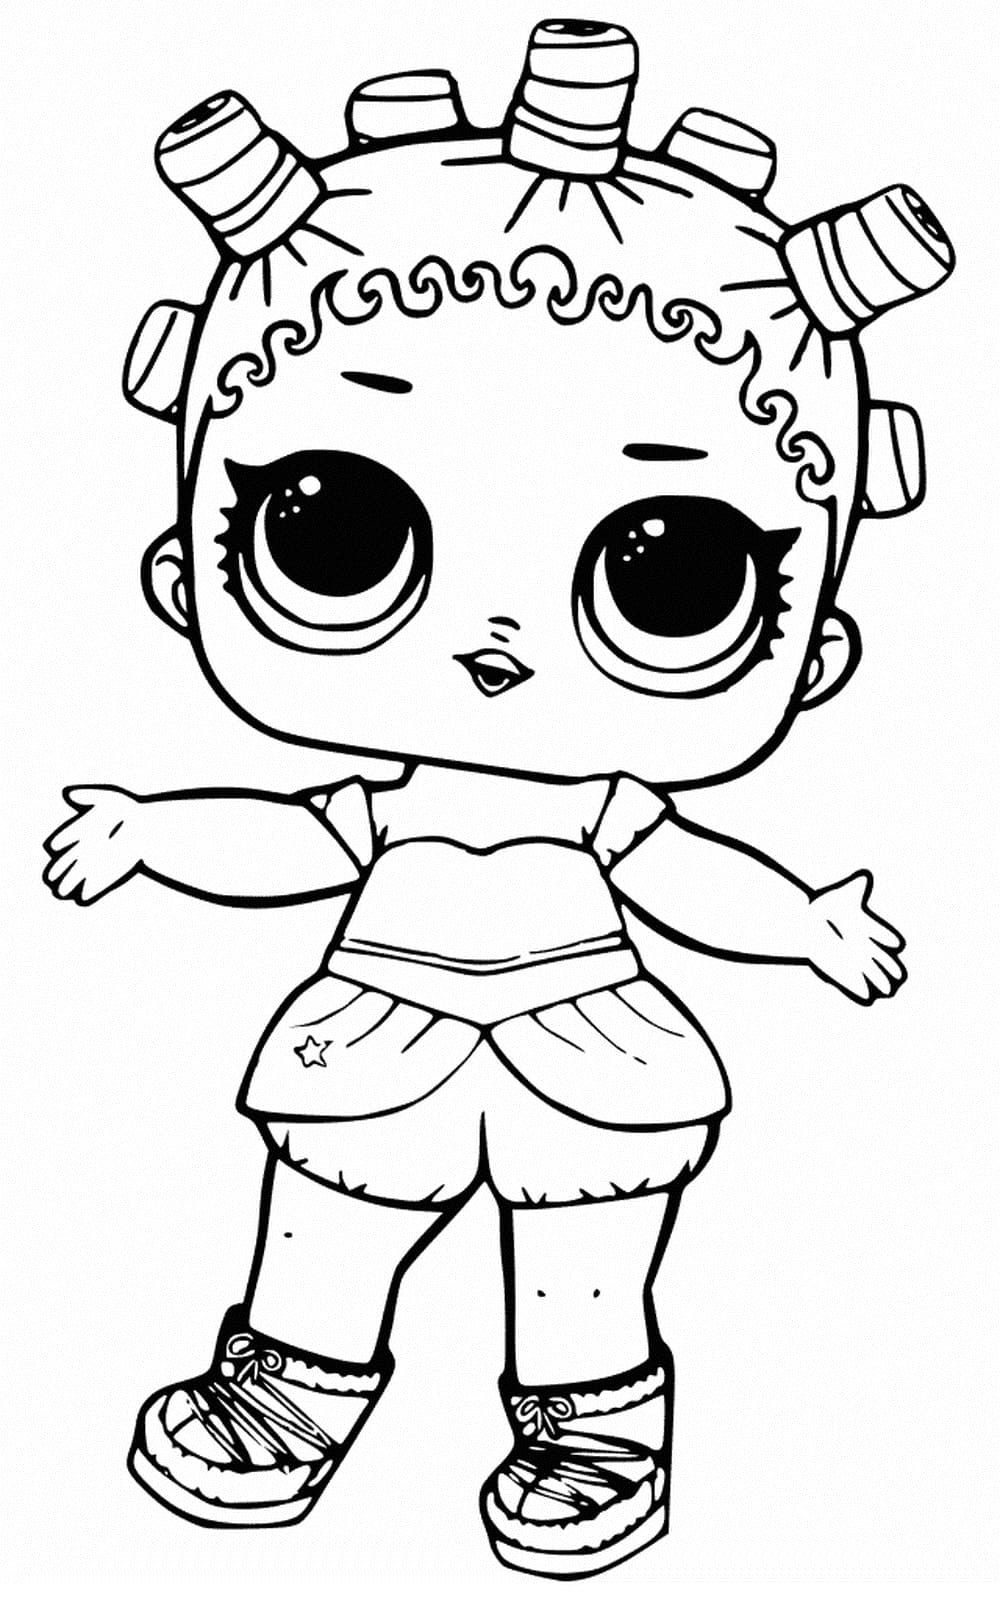 Lol Surprise Dolls Coloring Pages Print Them For Free All The Series In 2020 Baby Coloring Pages Lol Dolls Cartoon Coloring Pages